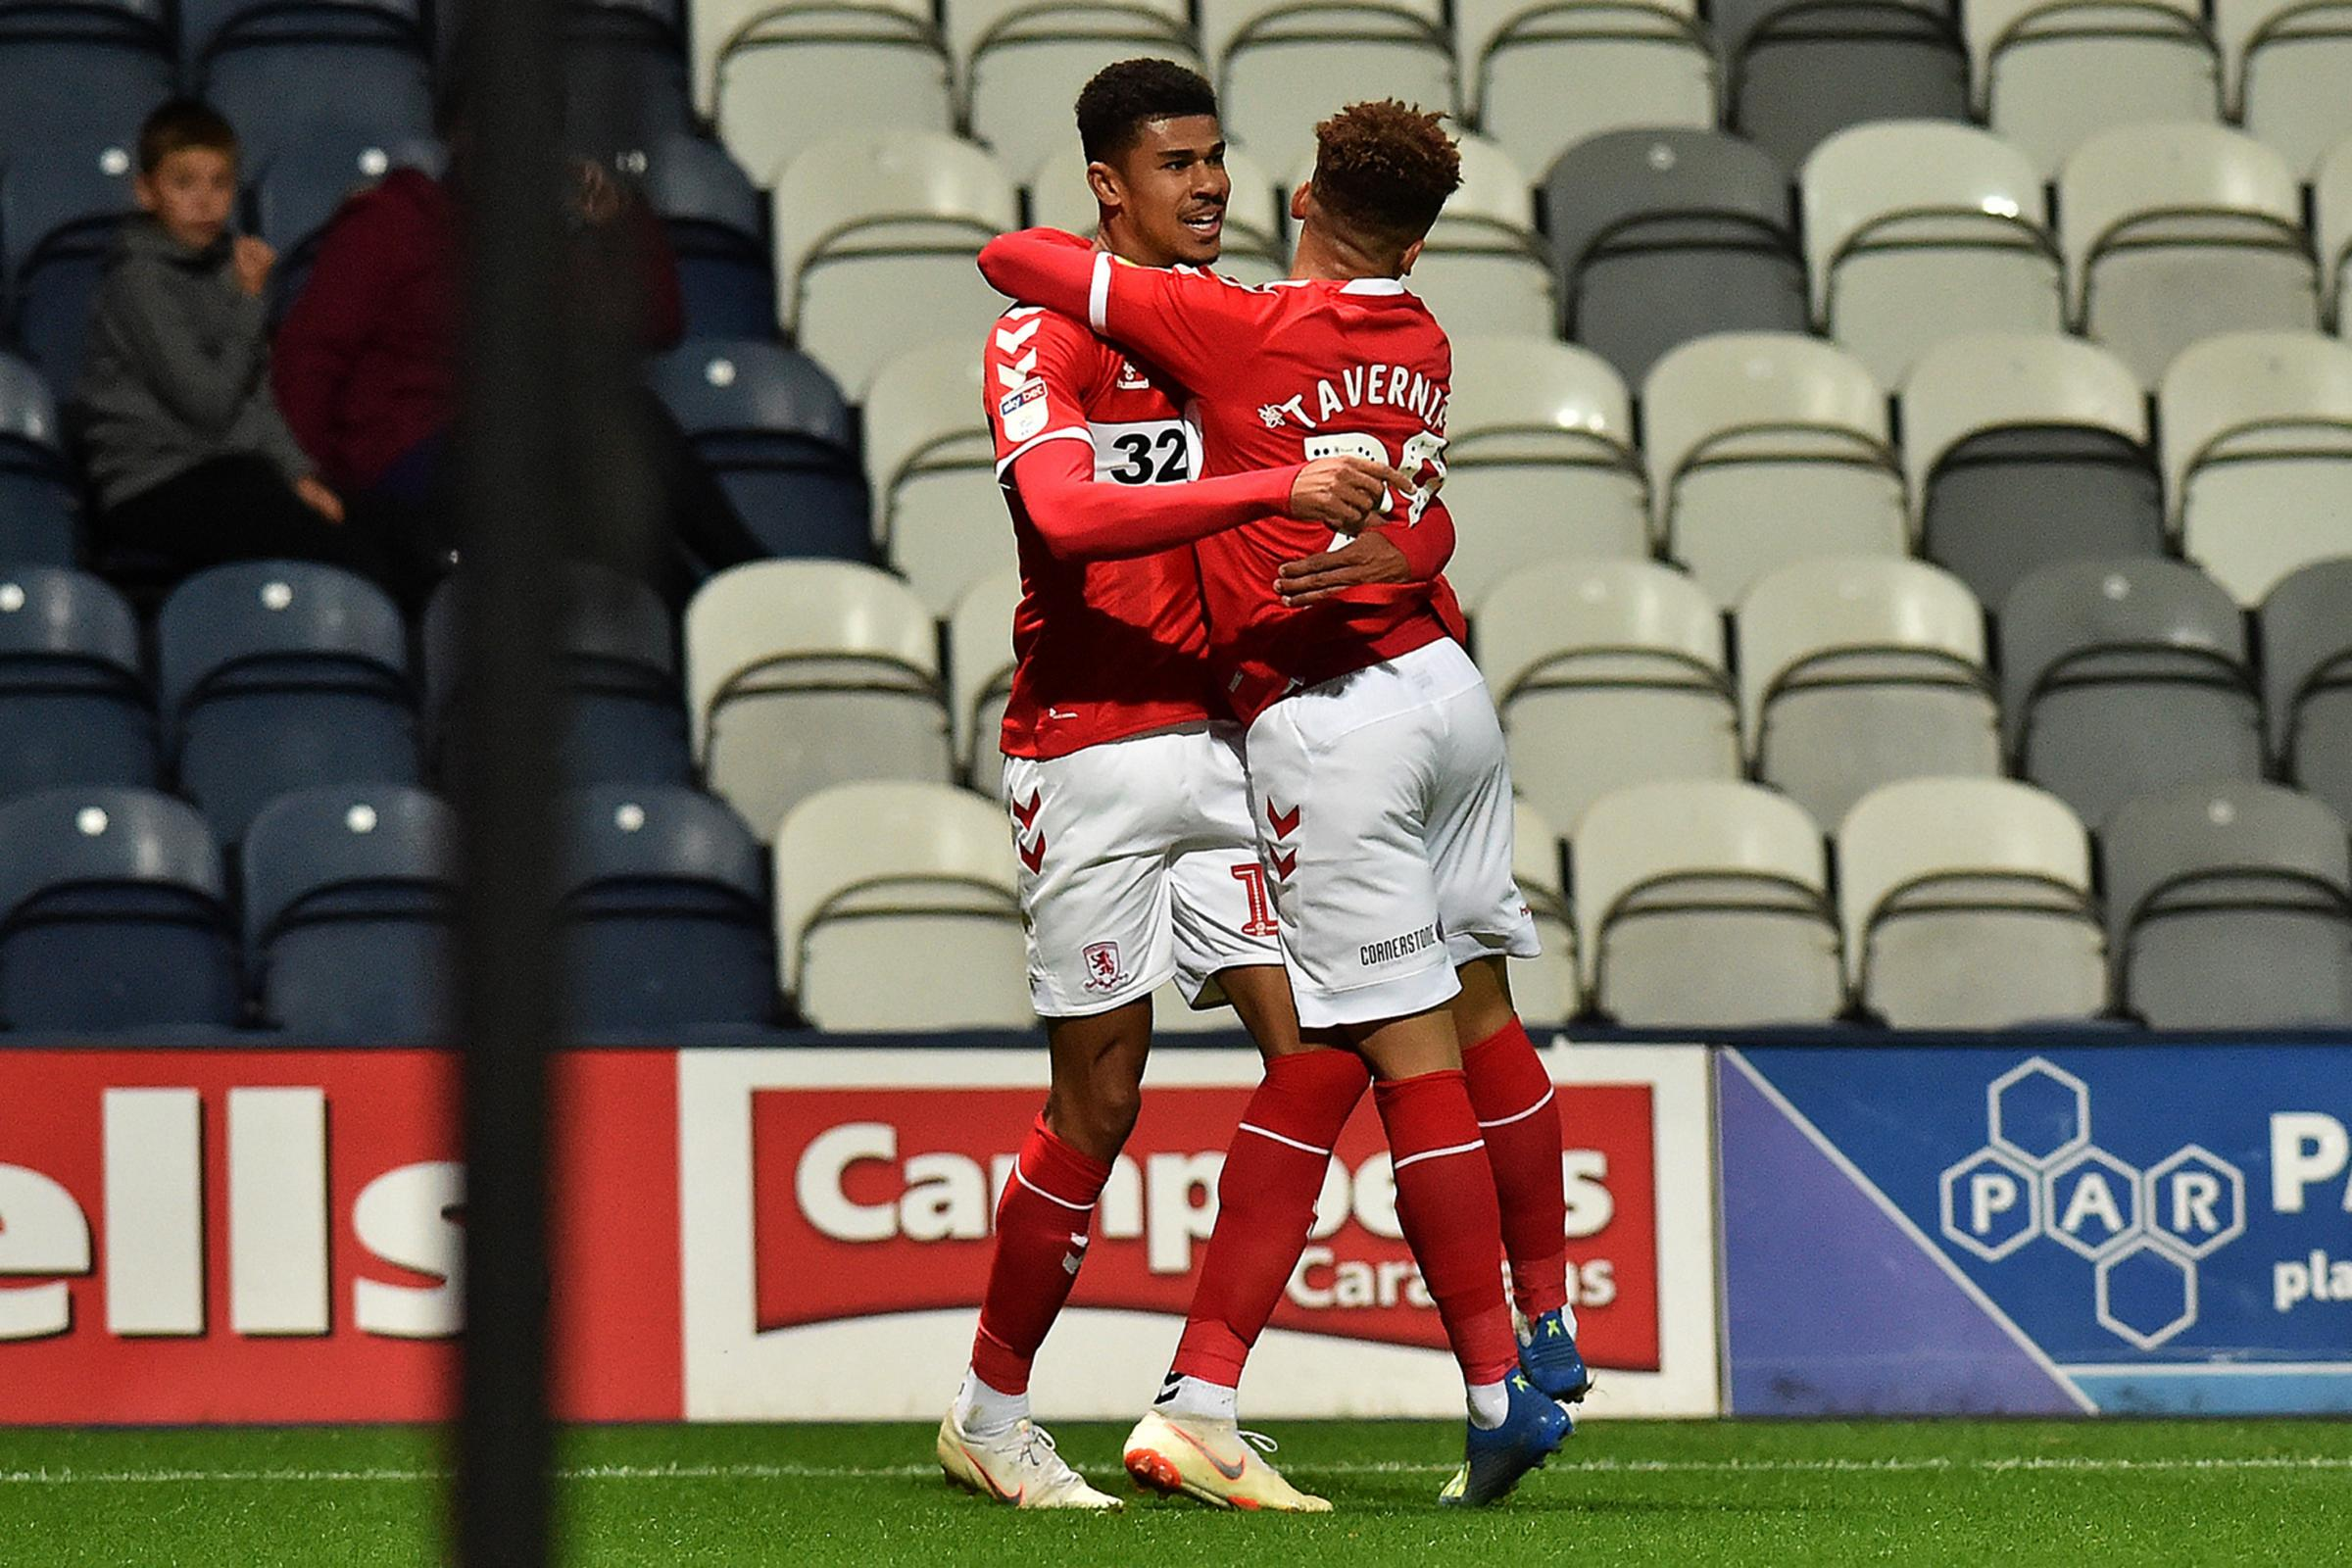 Middlesborough's Ashley Fletcher celebrates leveling the scores with team mate Marcus Tavernier during the Carabao Cup match between Preston North End and Middlesbrough at Deepdale, Preston on Tuesday 25th September 2018. (Credit: Eddie Garvey | MI Ne